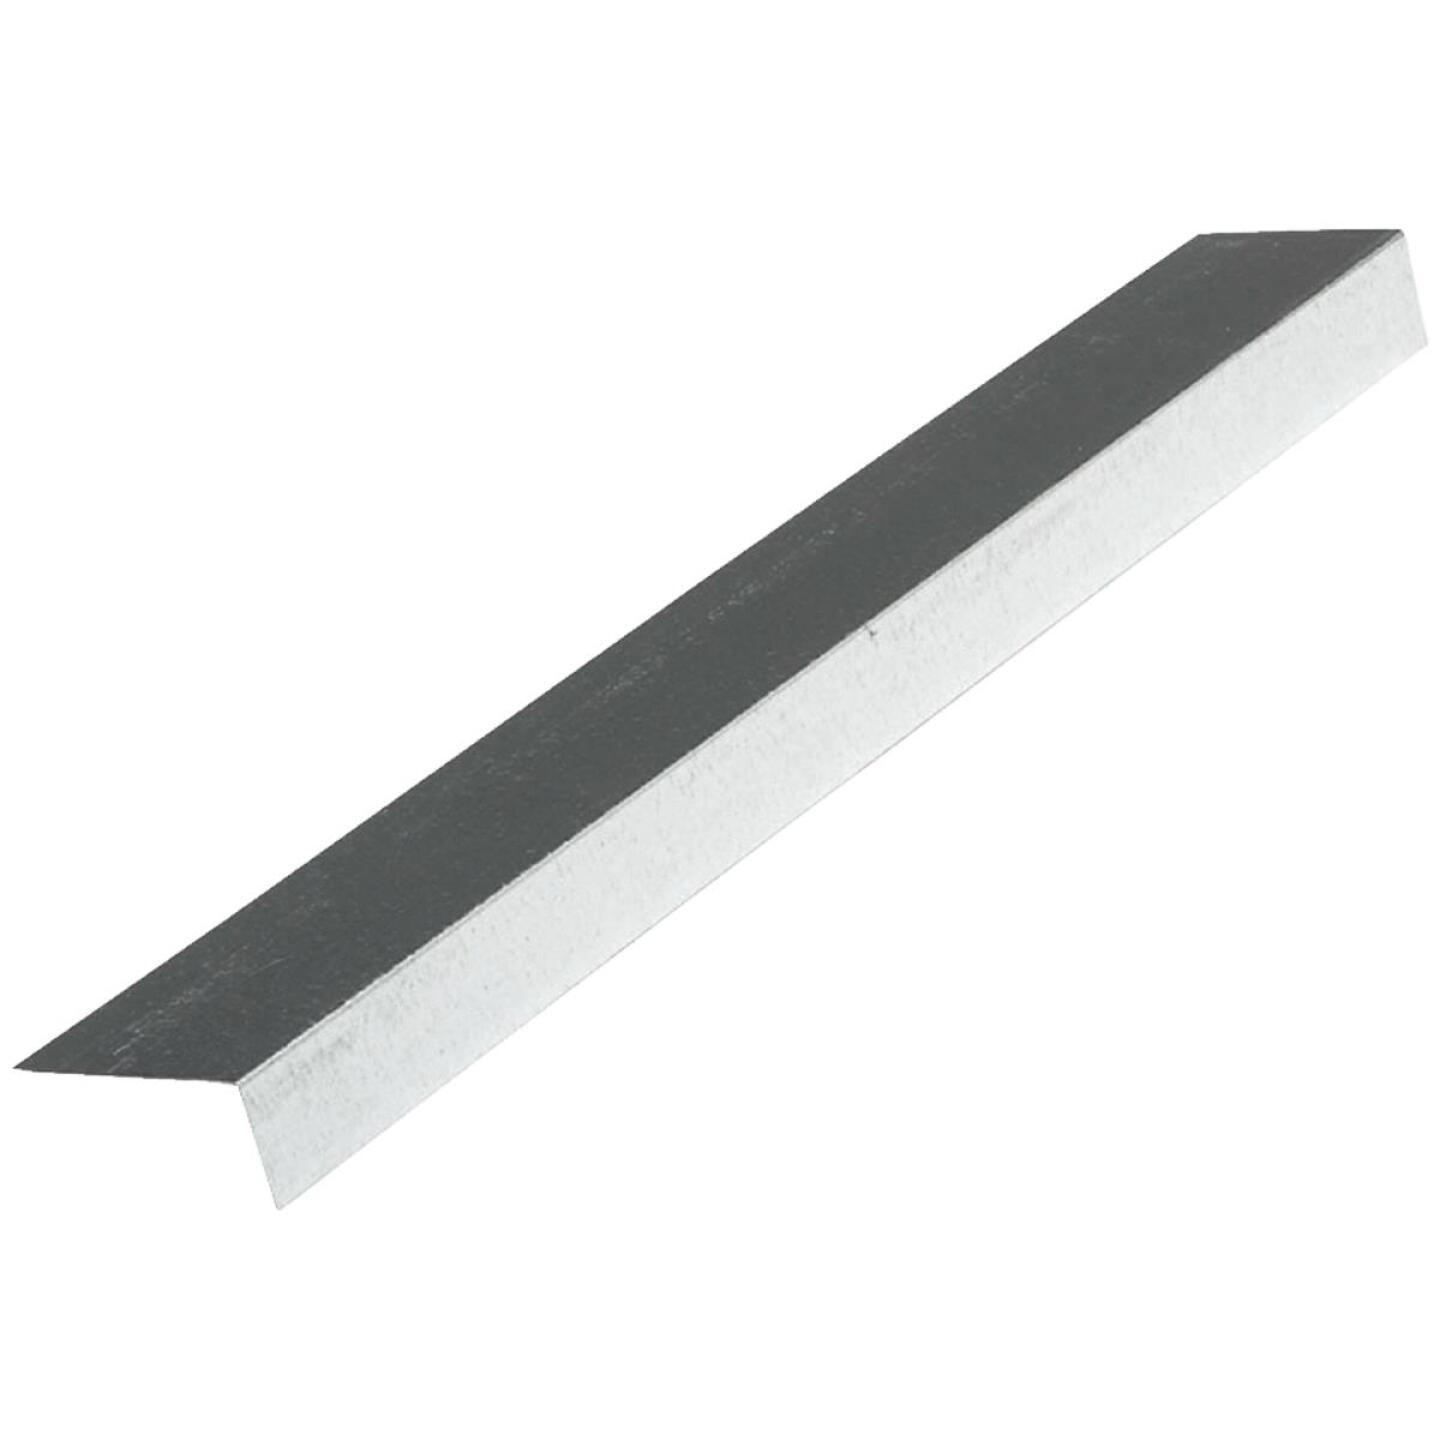 NorWesco A 1-1/2 In. X 1-1/2 In. Galvanized Steel Roof & Drip Edge Flashing Image 1